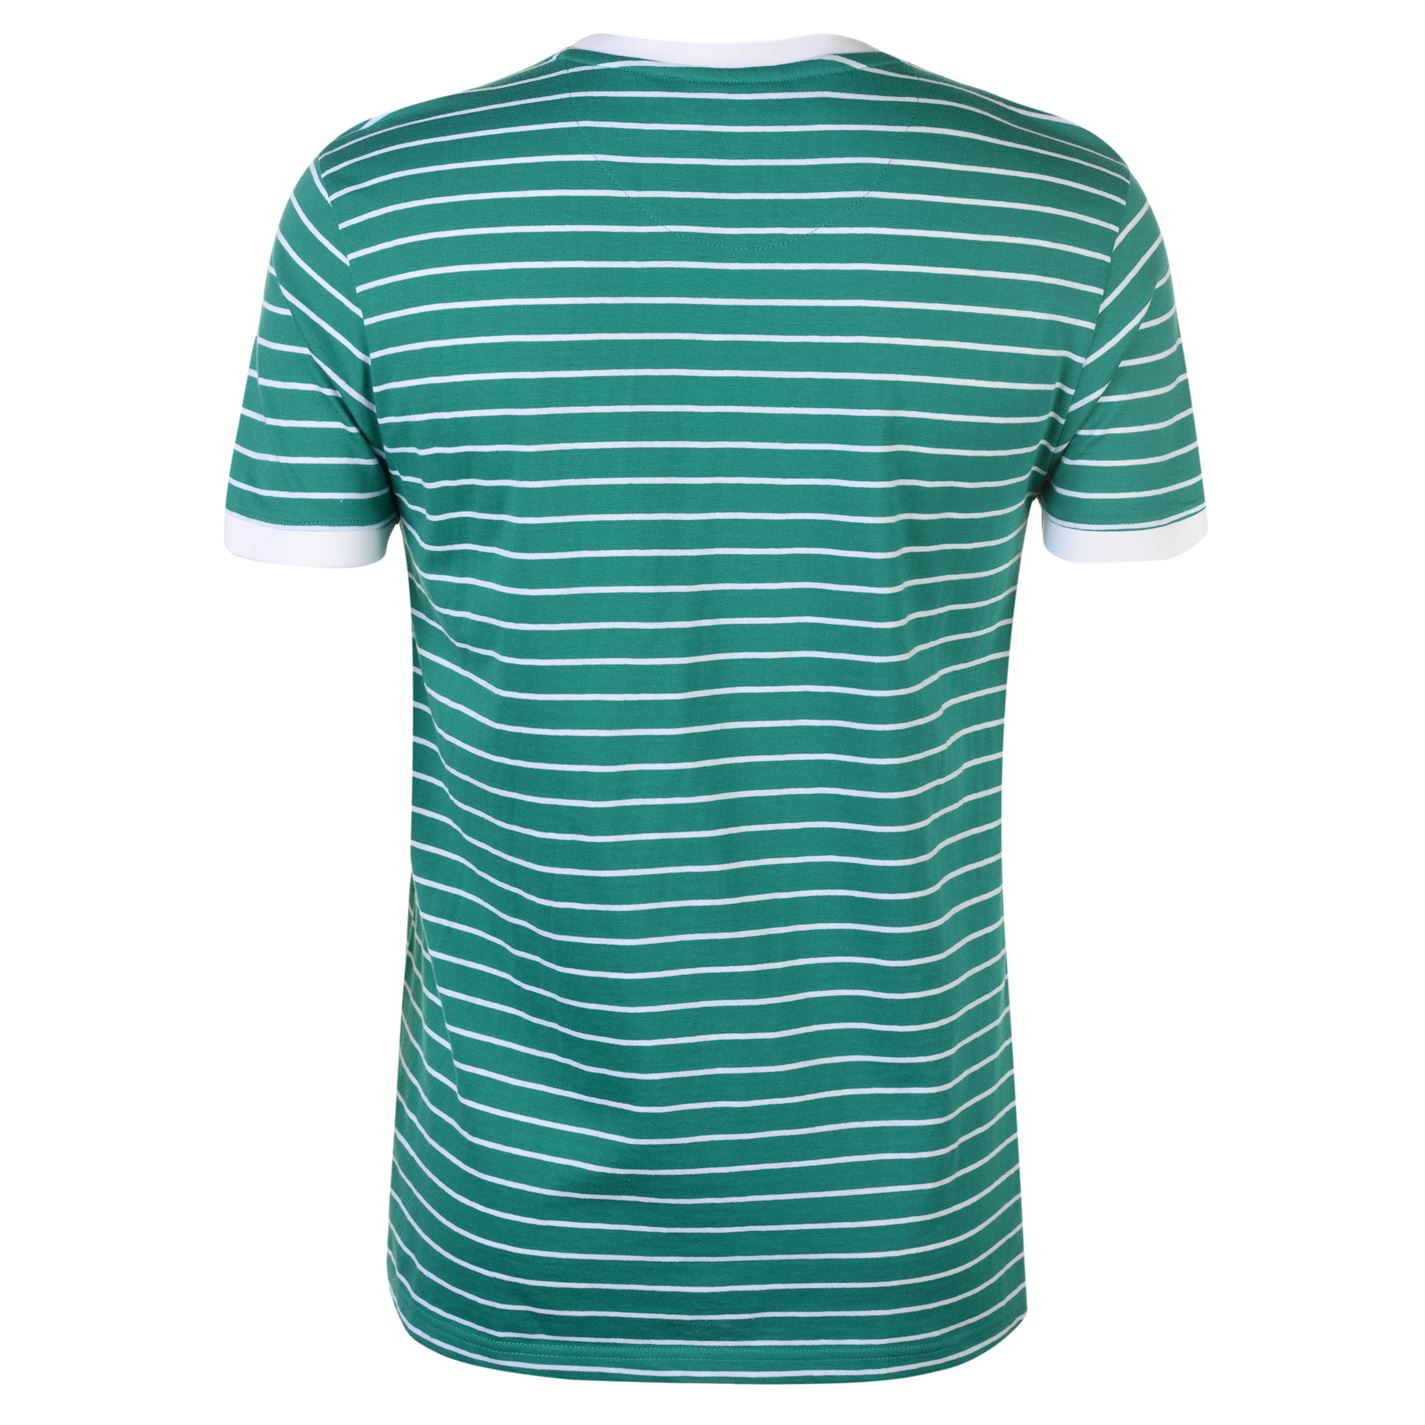 Pierre-Cardin-Mens-Stripe-Ringer-T-Shirt-Crew-Neck-Tee-Top-Short-Sleeve-Cotton thumbnail 12